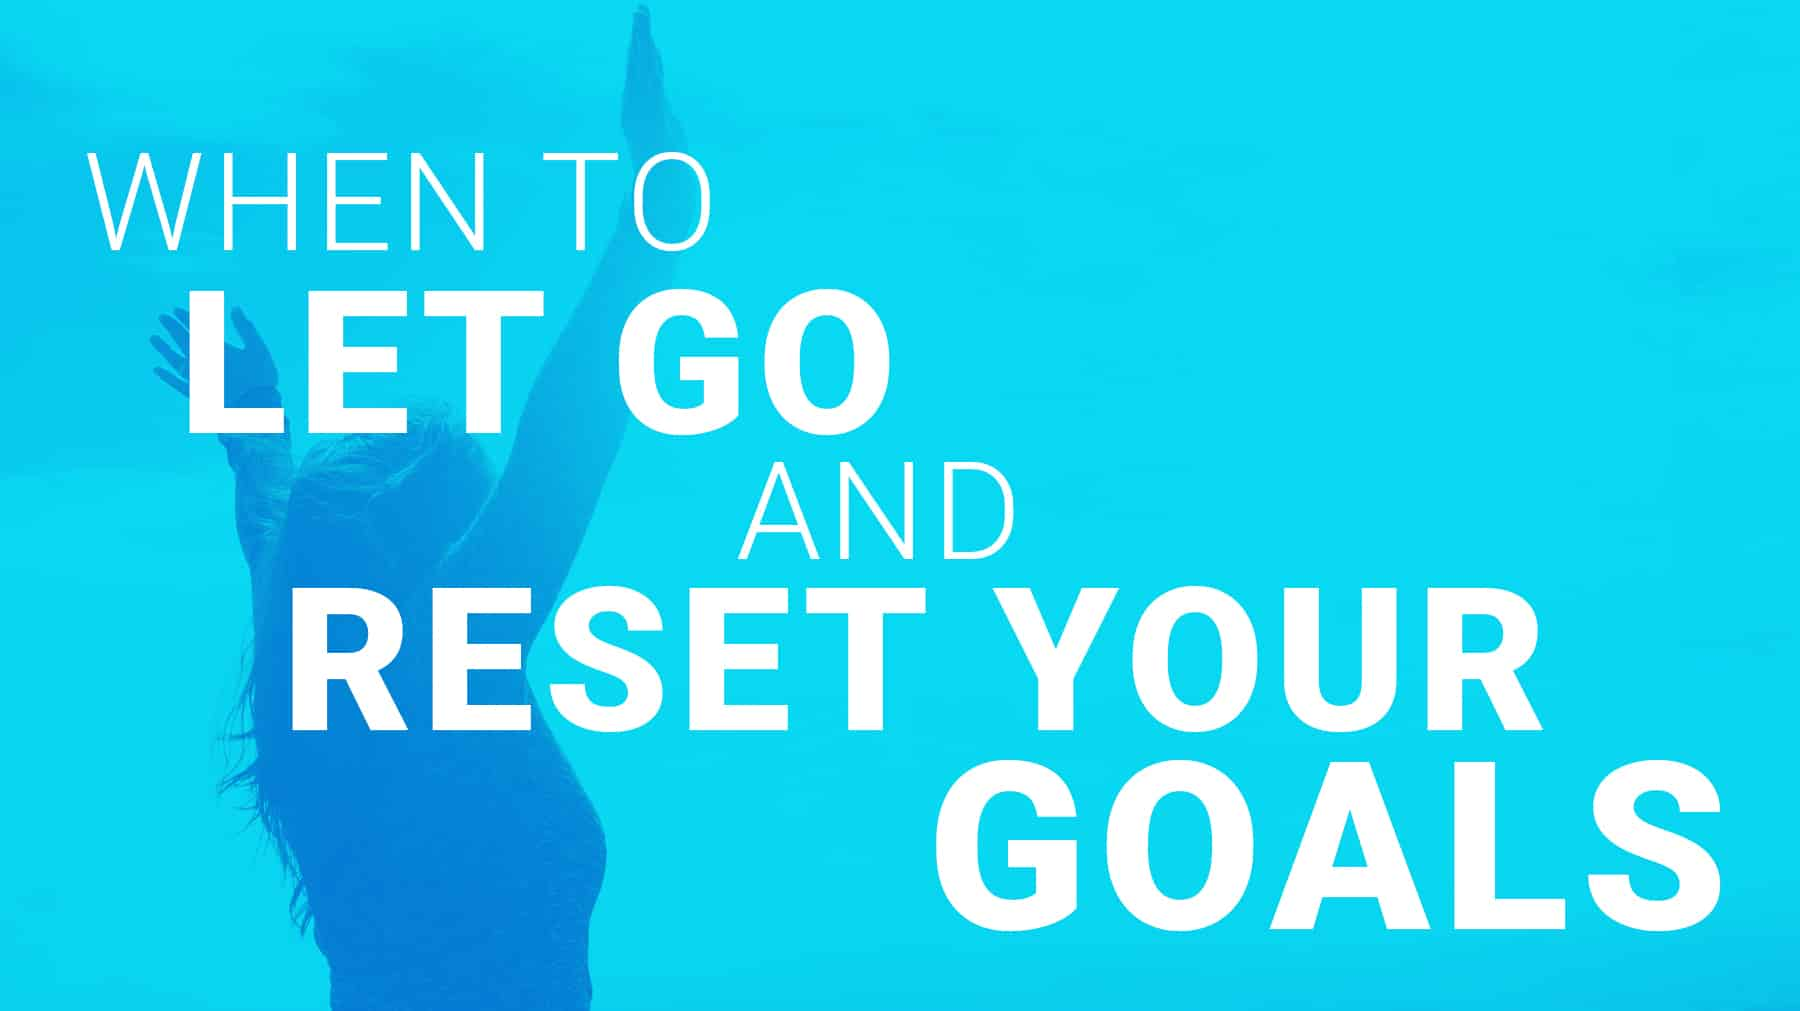 When to let go and reset your goals